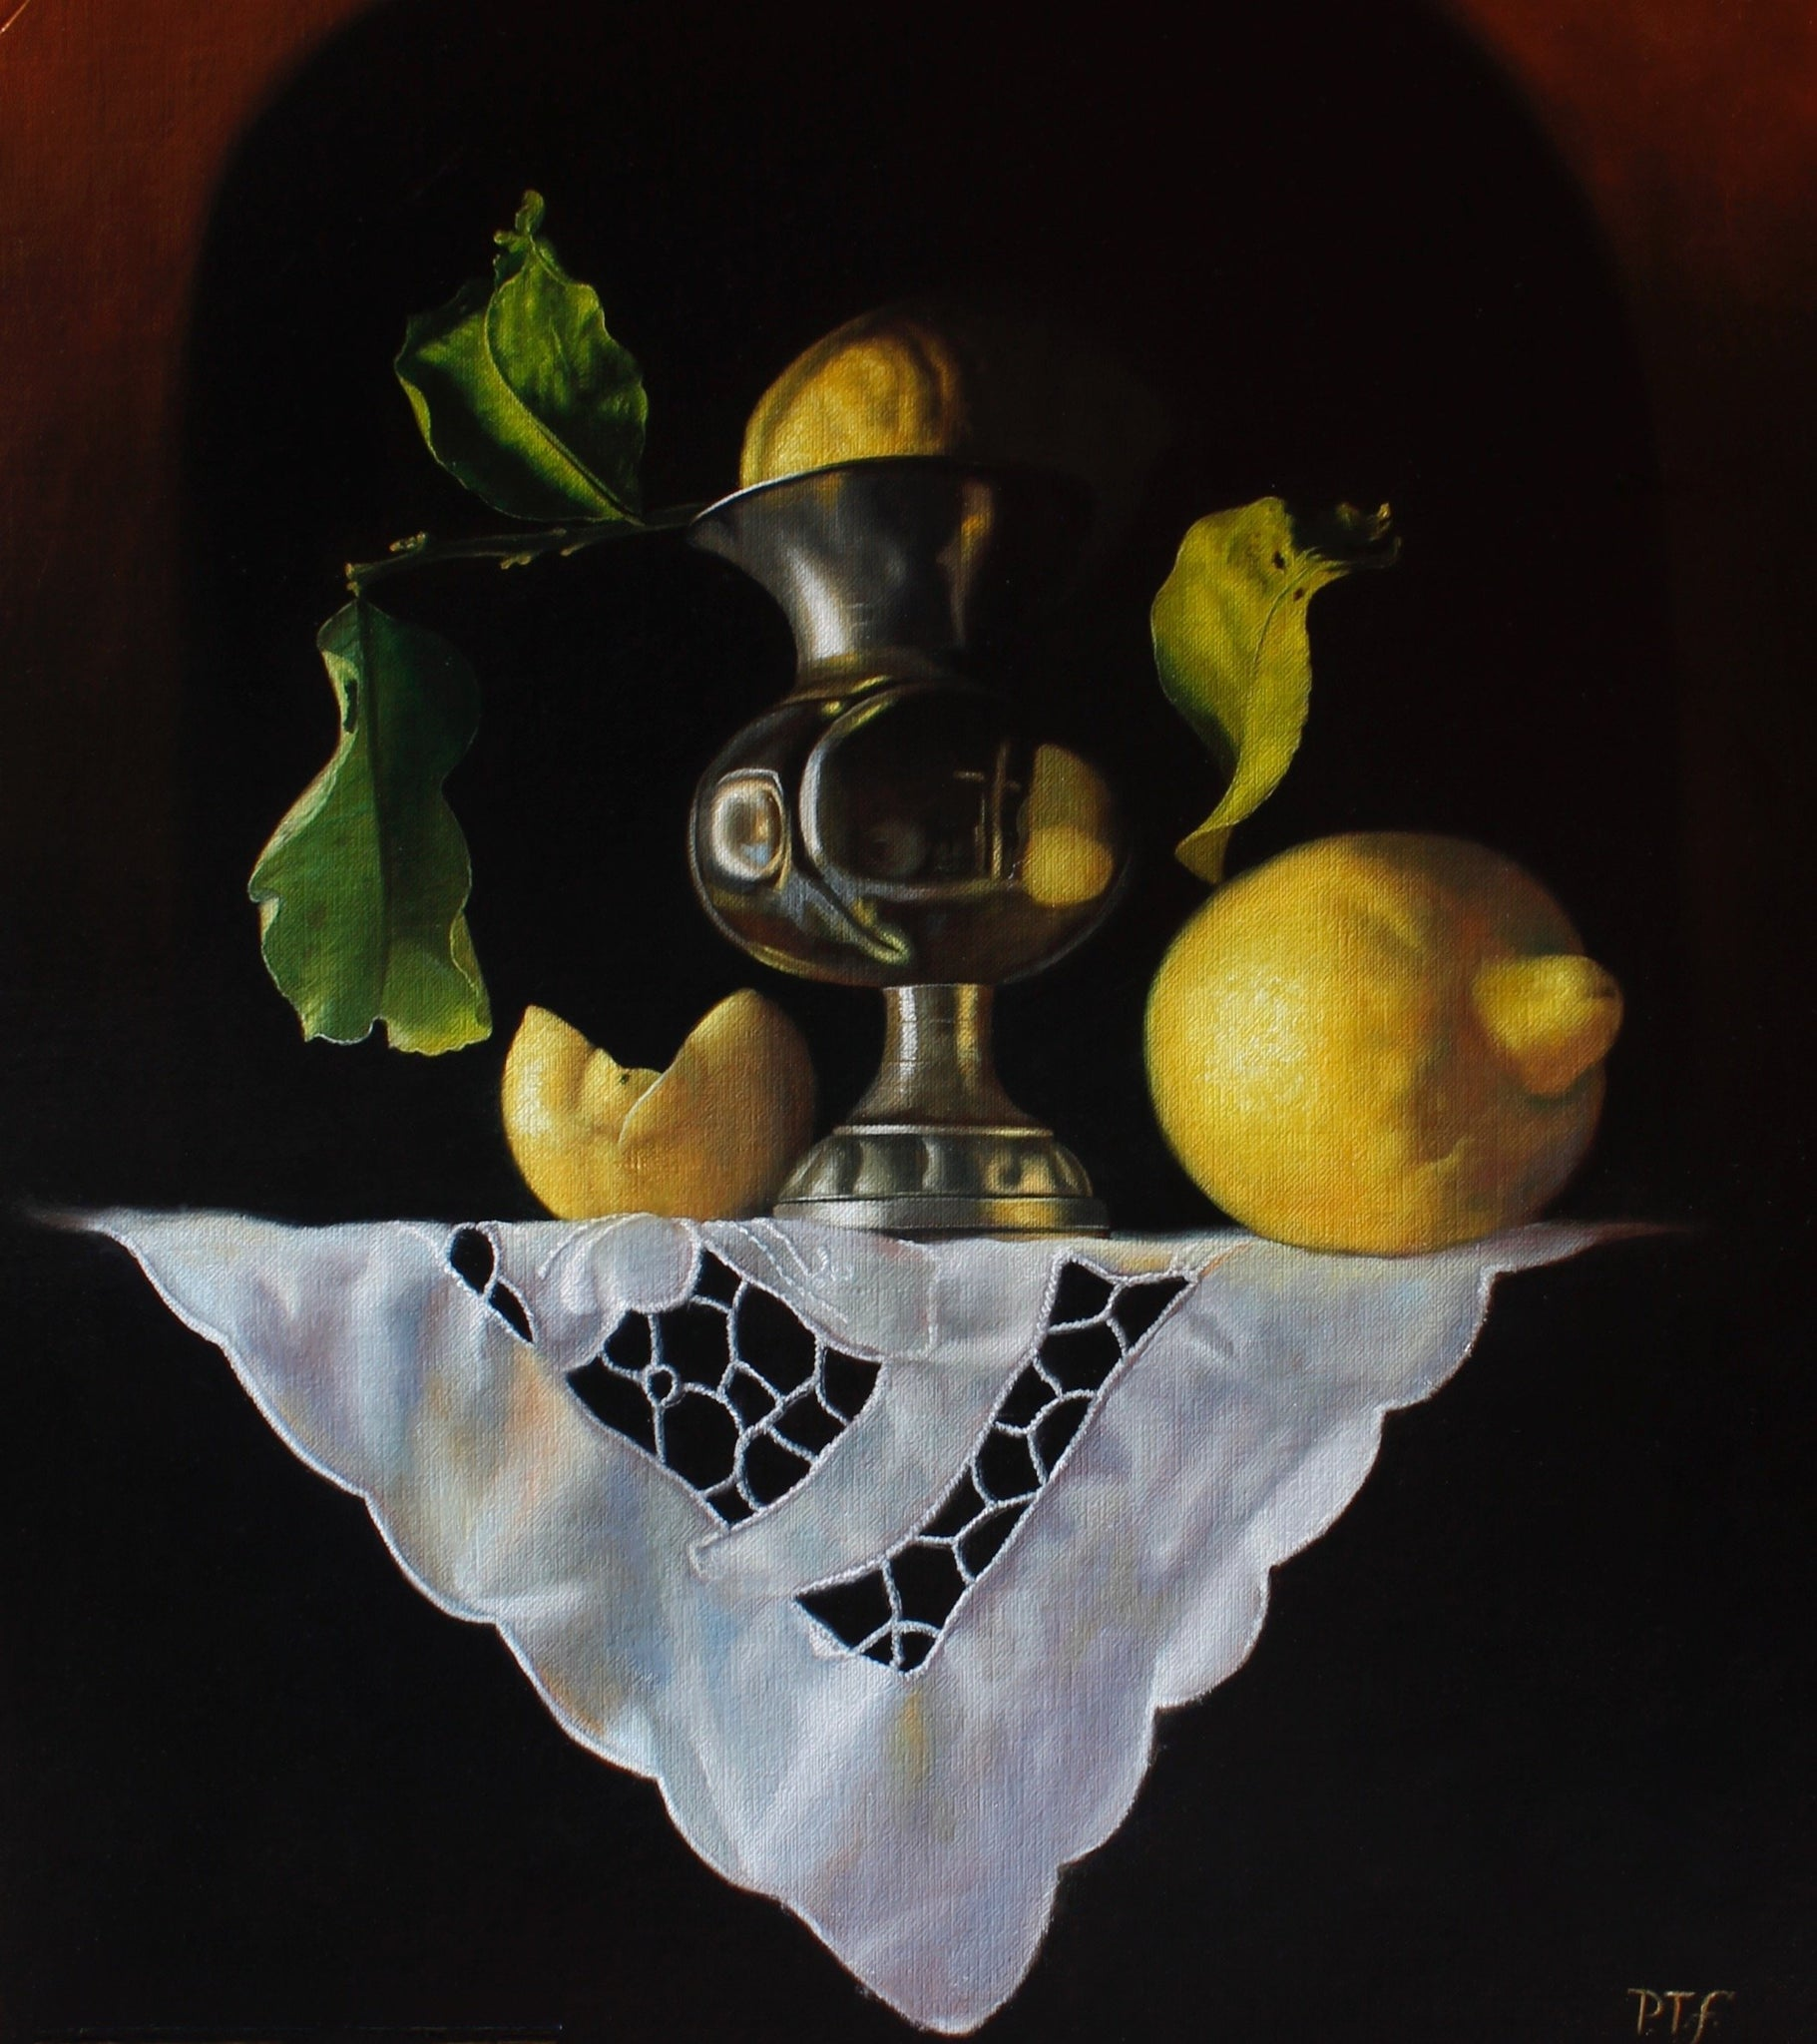 Lemons with pewter vase and white lace cloth - The Arts Inn Fine Art Gallery